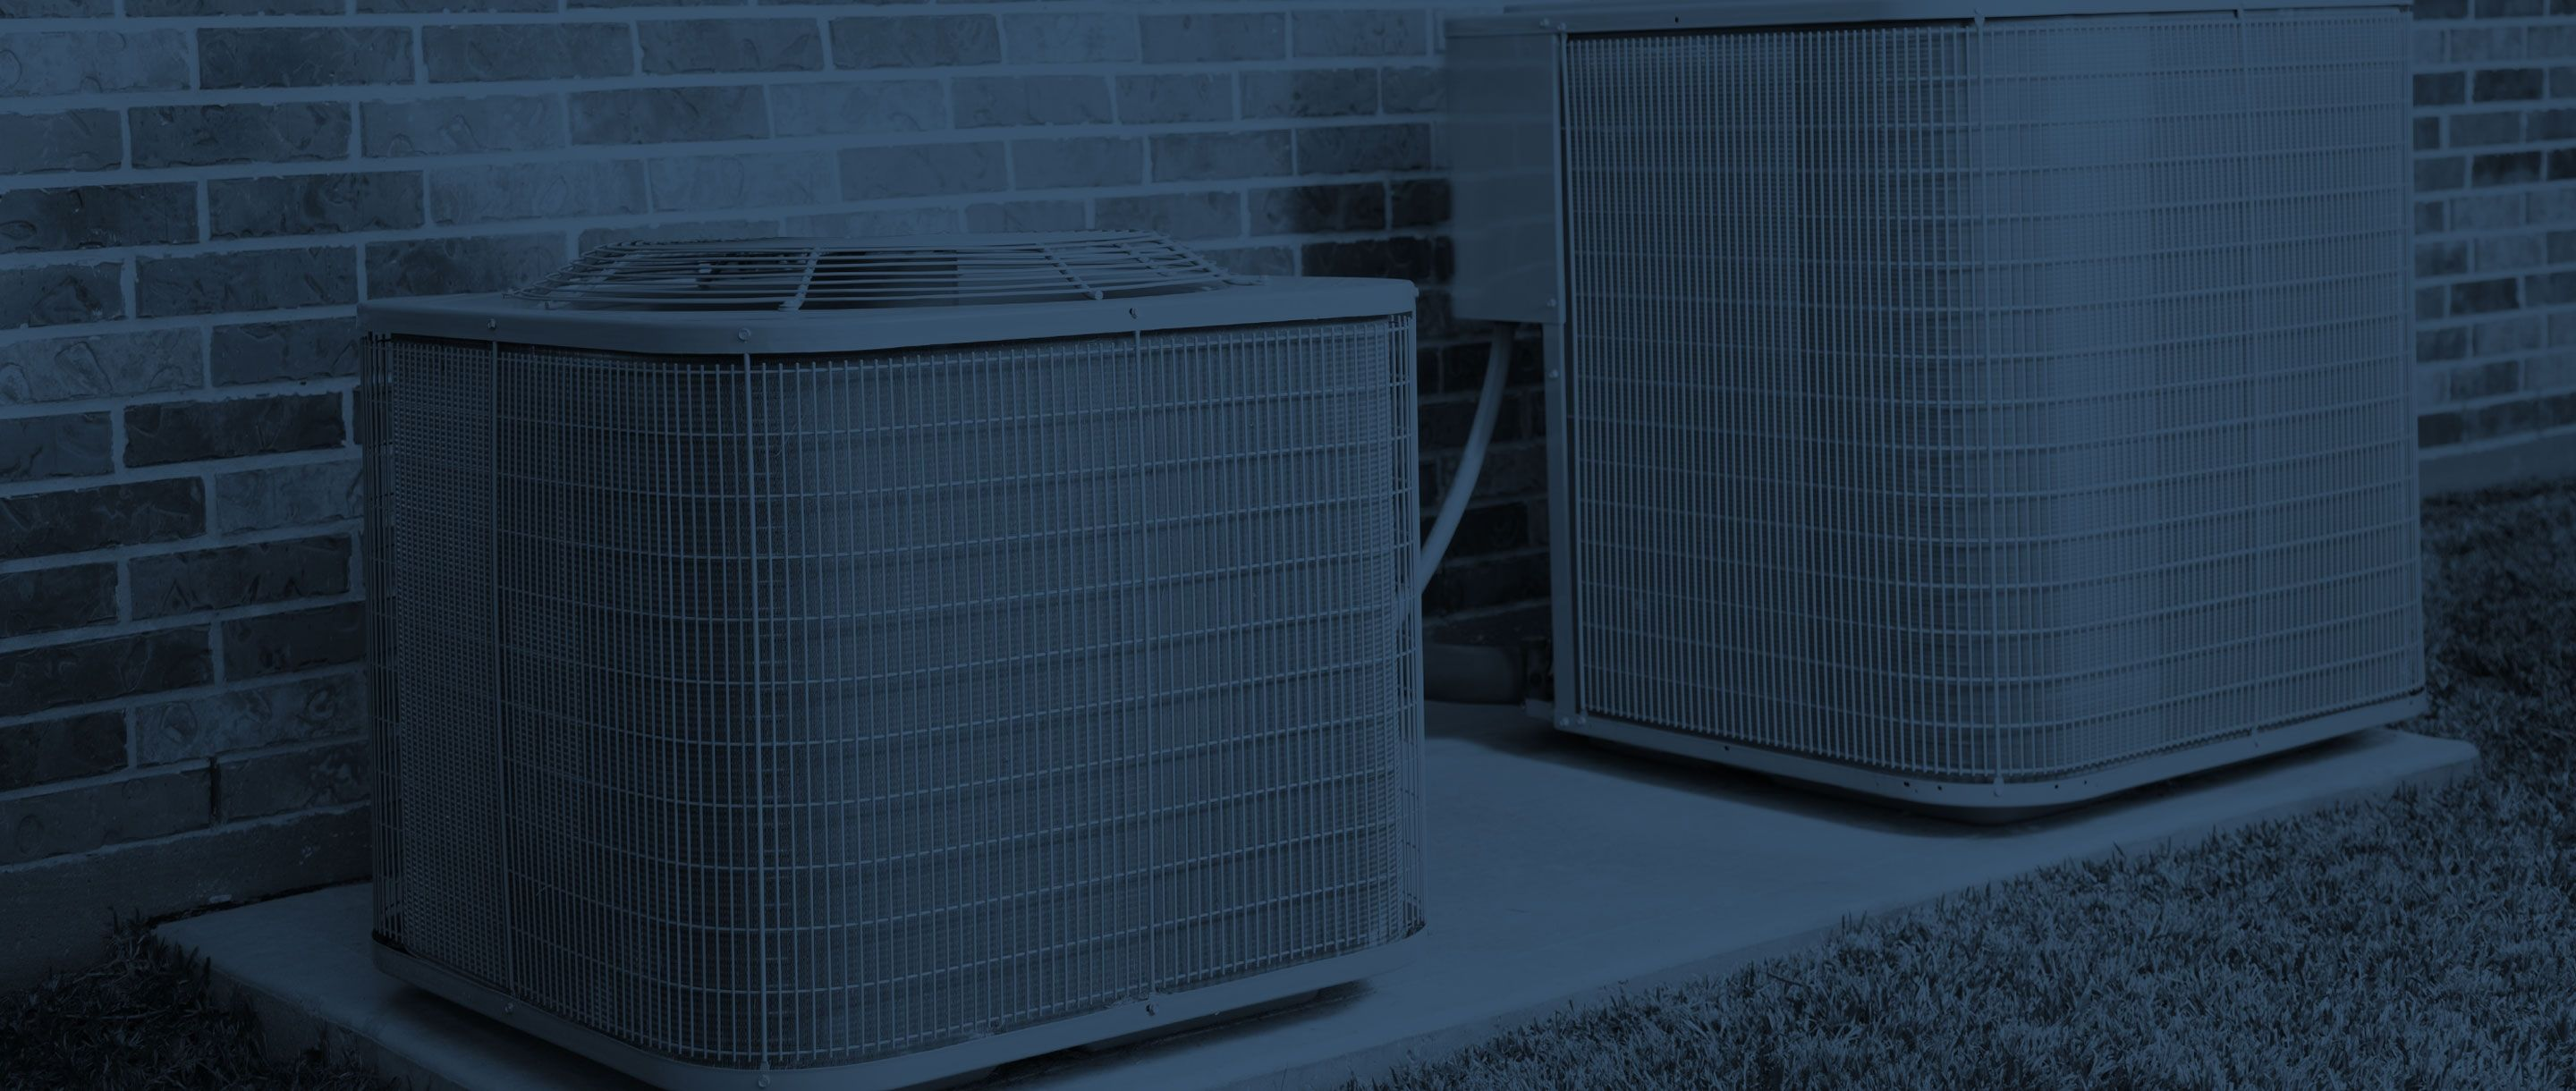 Best Central Air Conditioning Buying Guide Consumer Reports Good